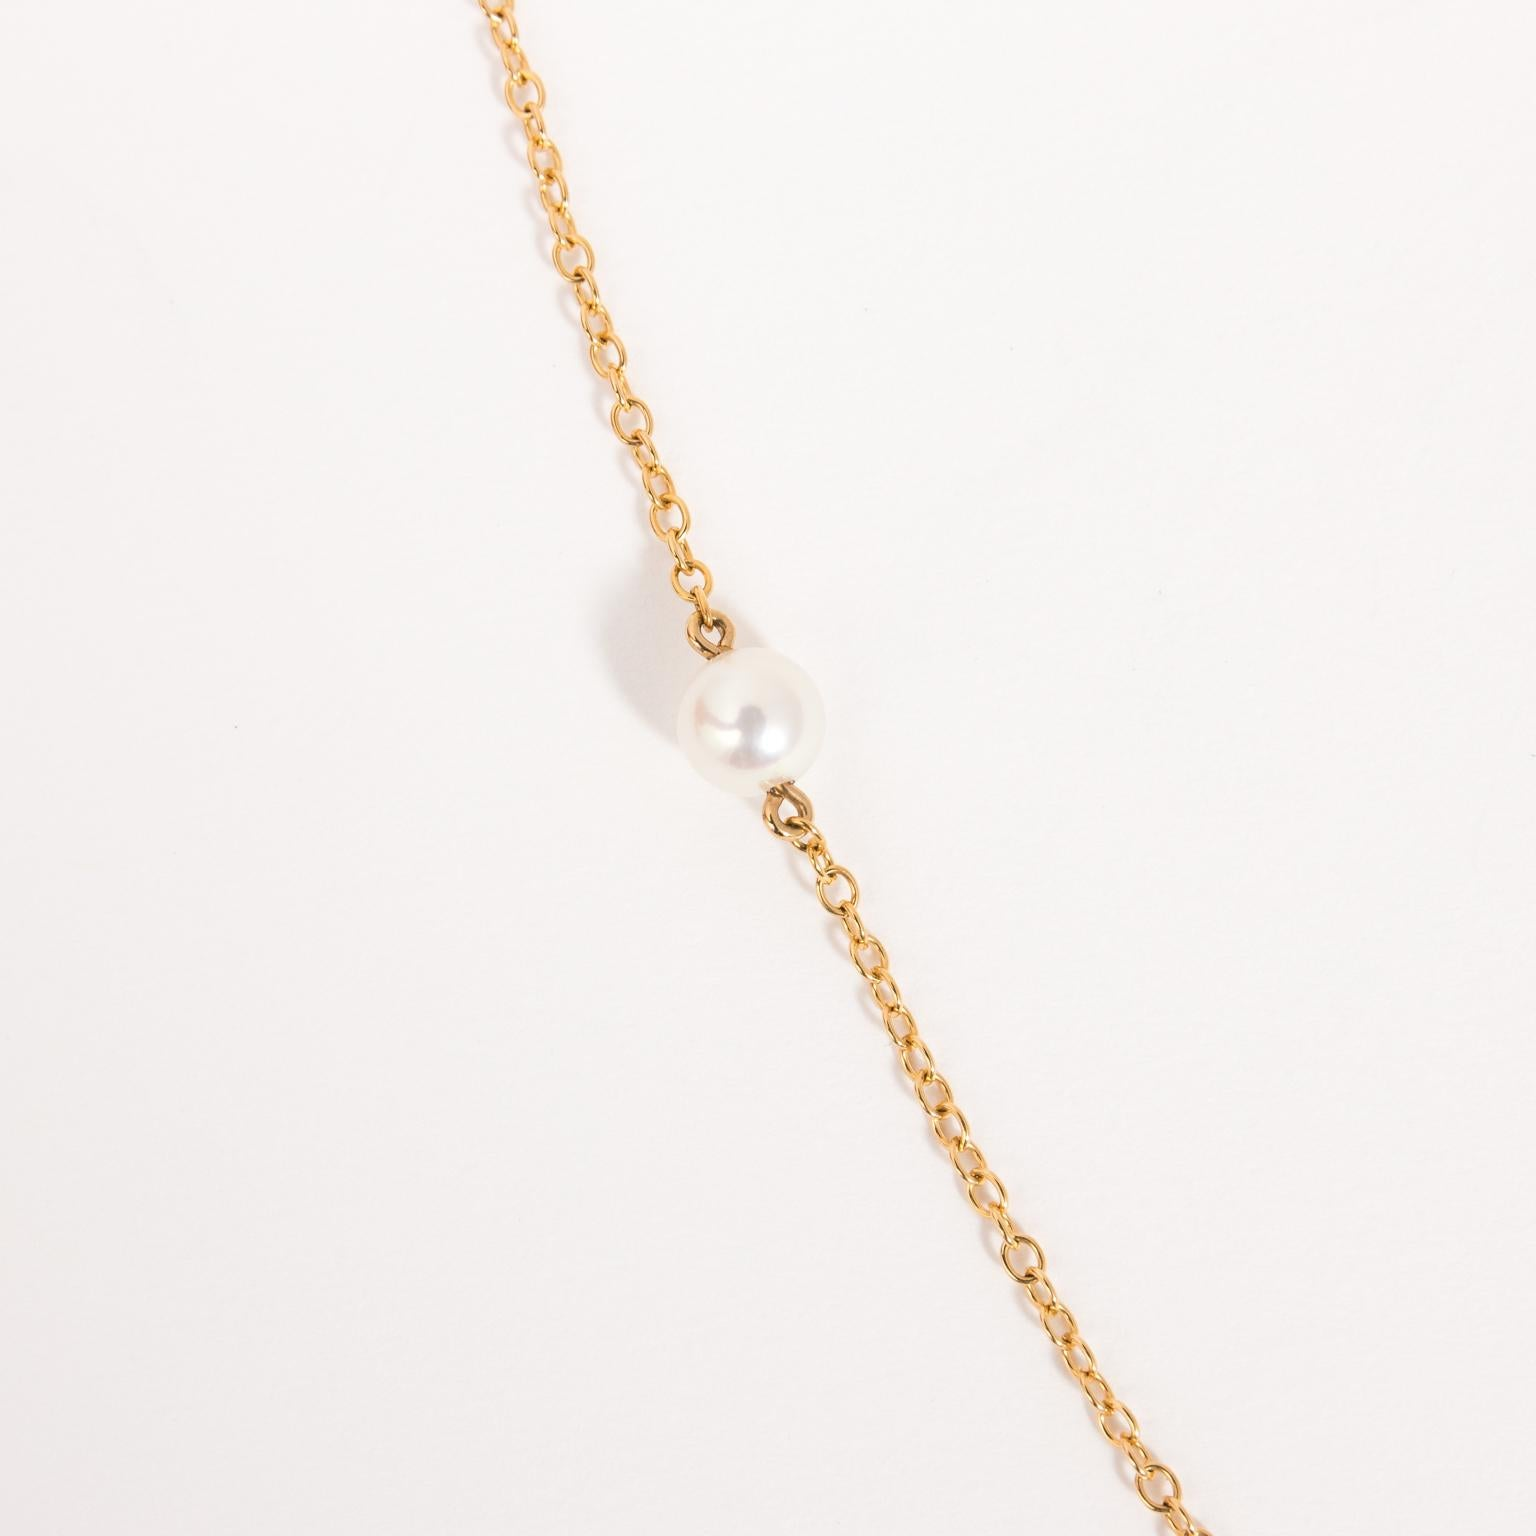 98f57f9fd Early Tiffany and Co. Elsa Peretti 18 Karat Yellow Gold Pearl Necklace For  Sale at 1stdibs